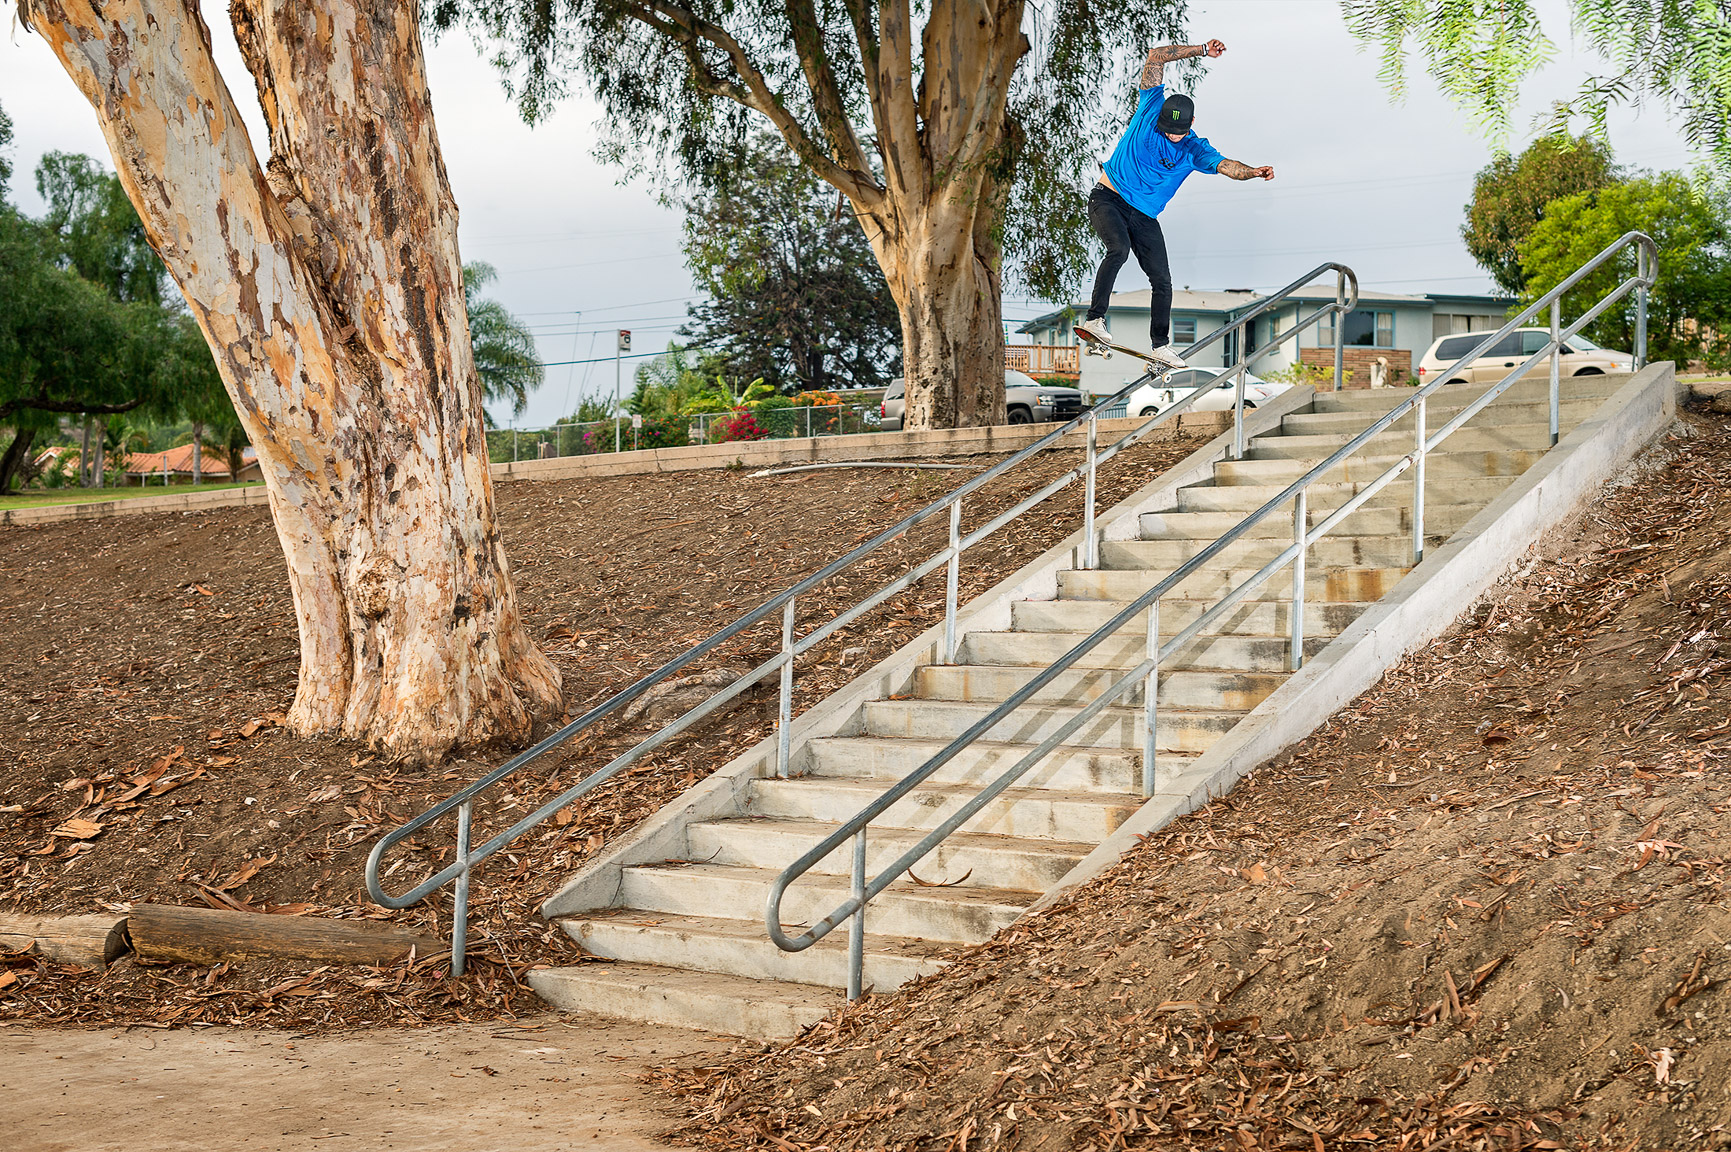 Nyjah Huston, San Diego, California